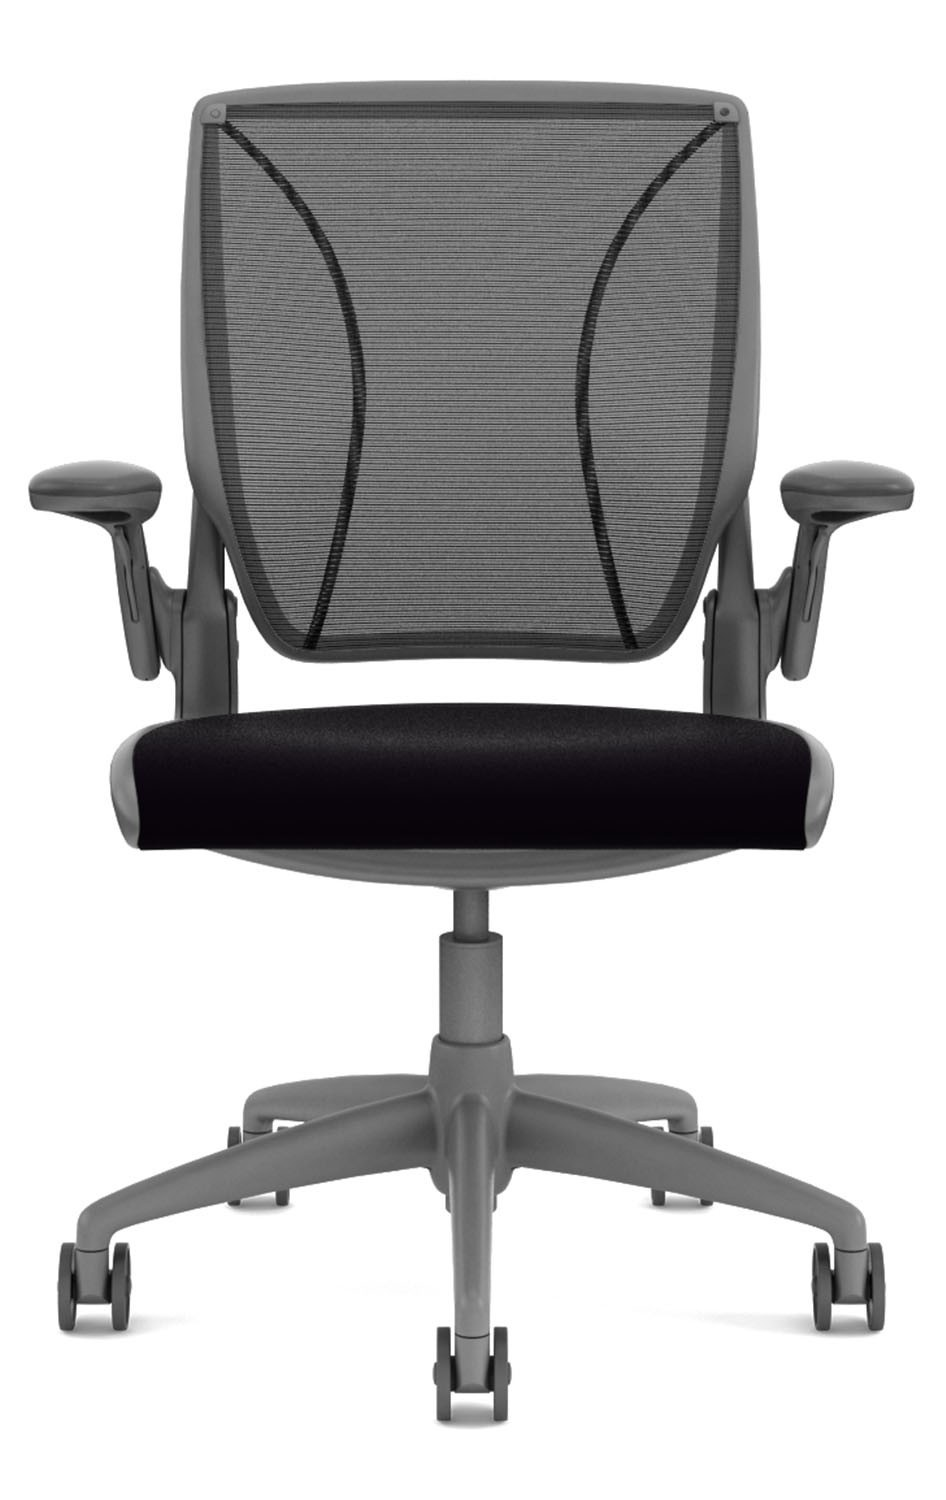 polished aluminium furniture ergonomic scene humanscale chairs greenwood vellum chair shop office with frame task freedom